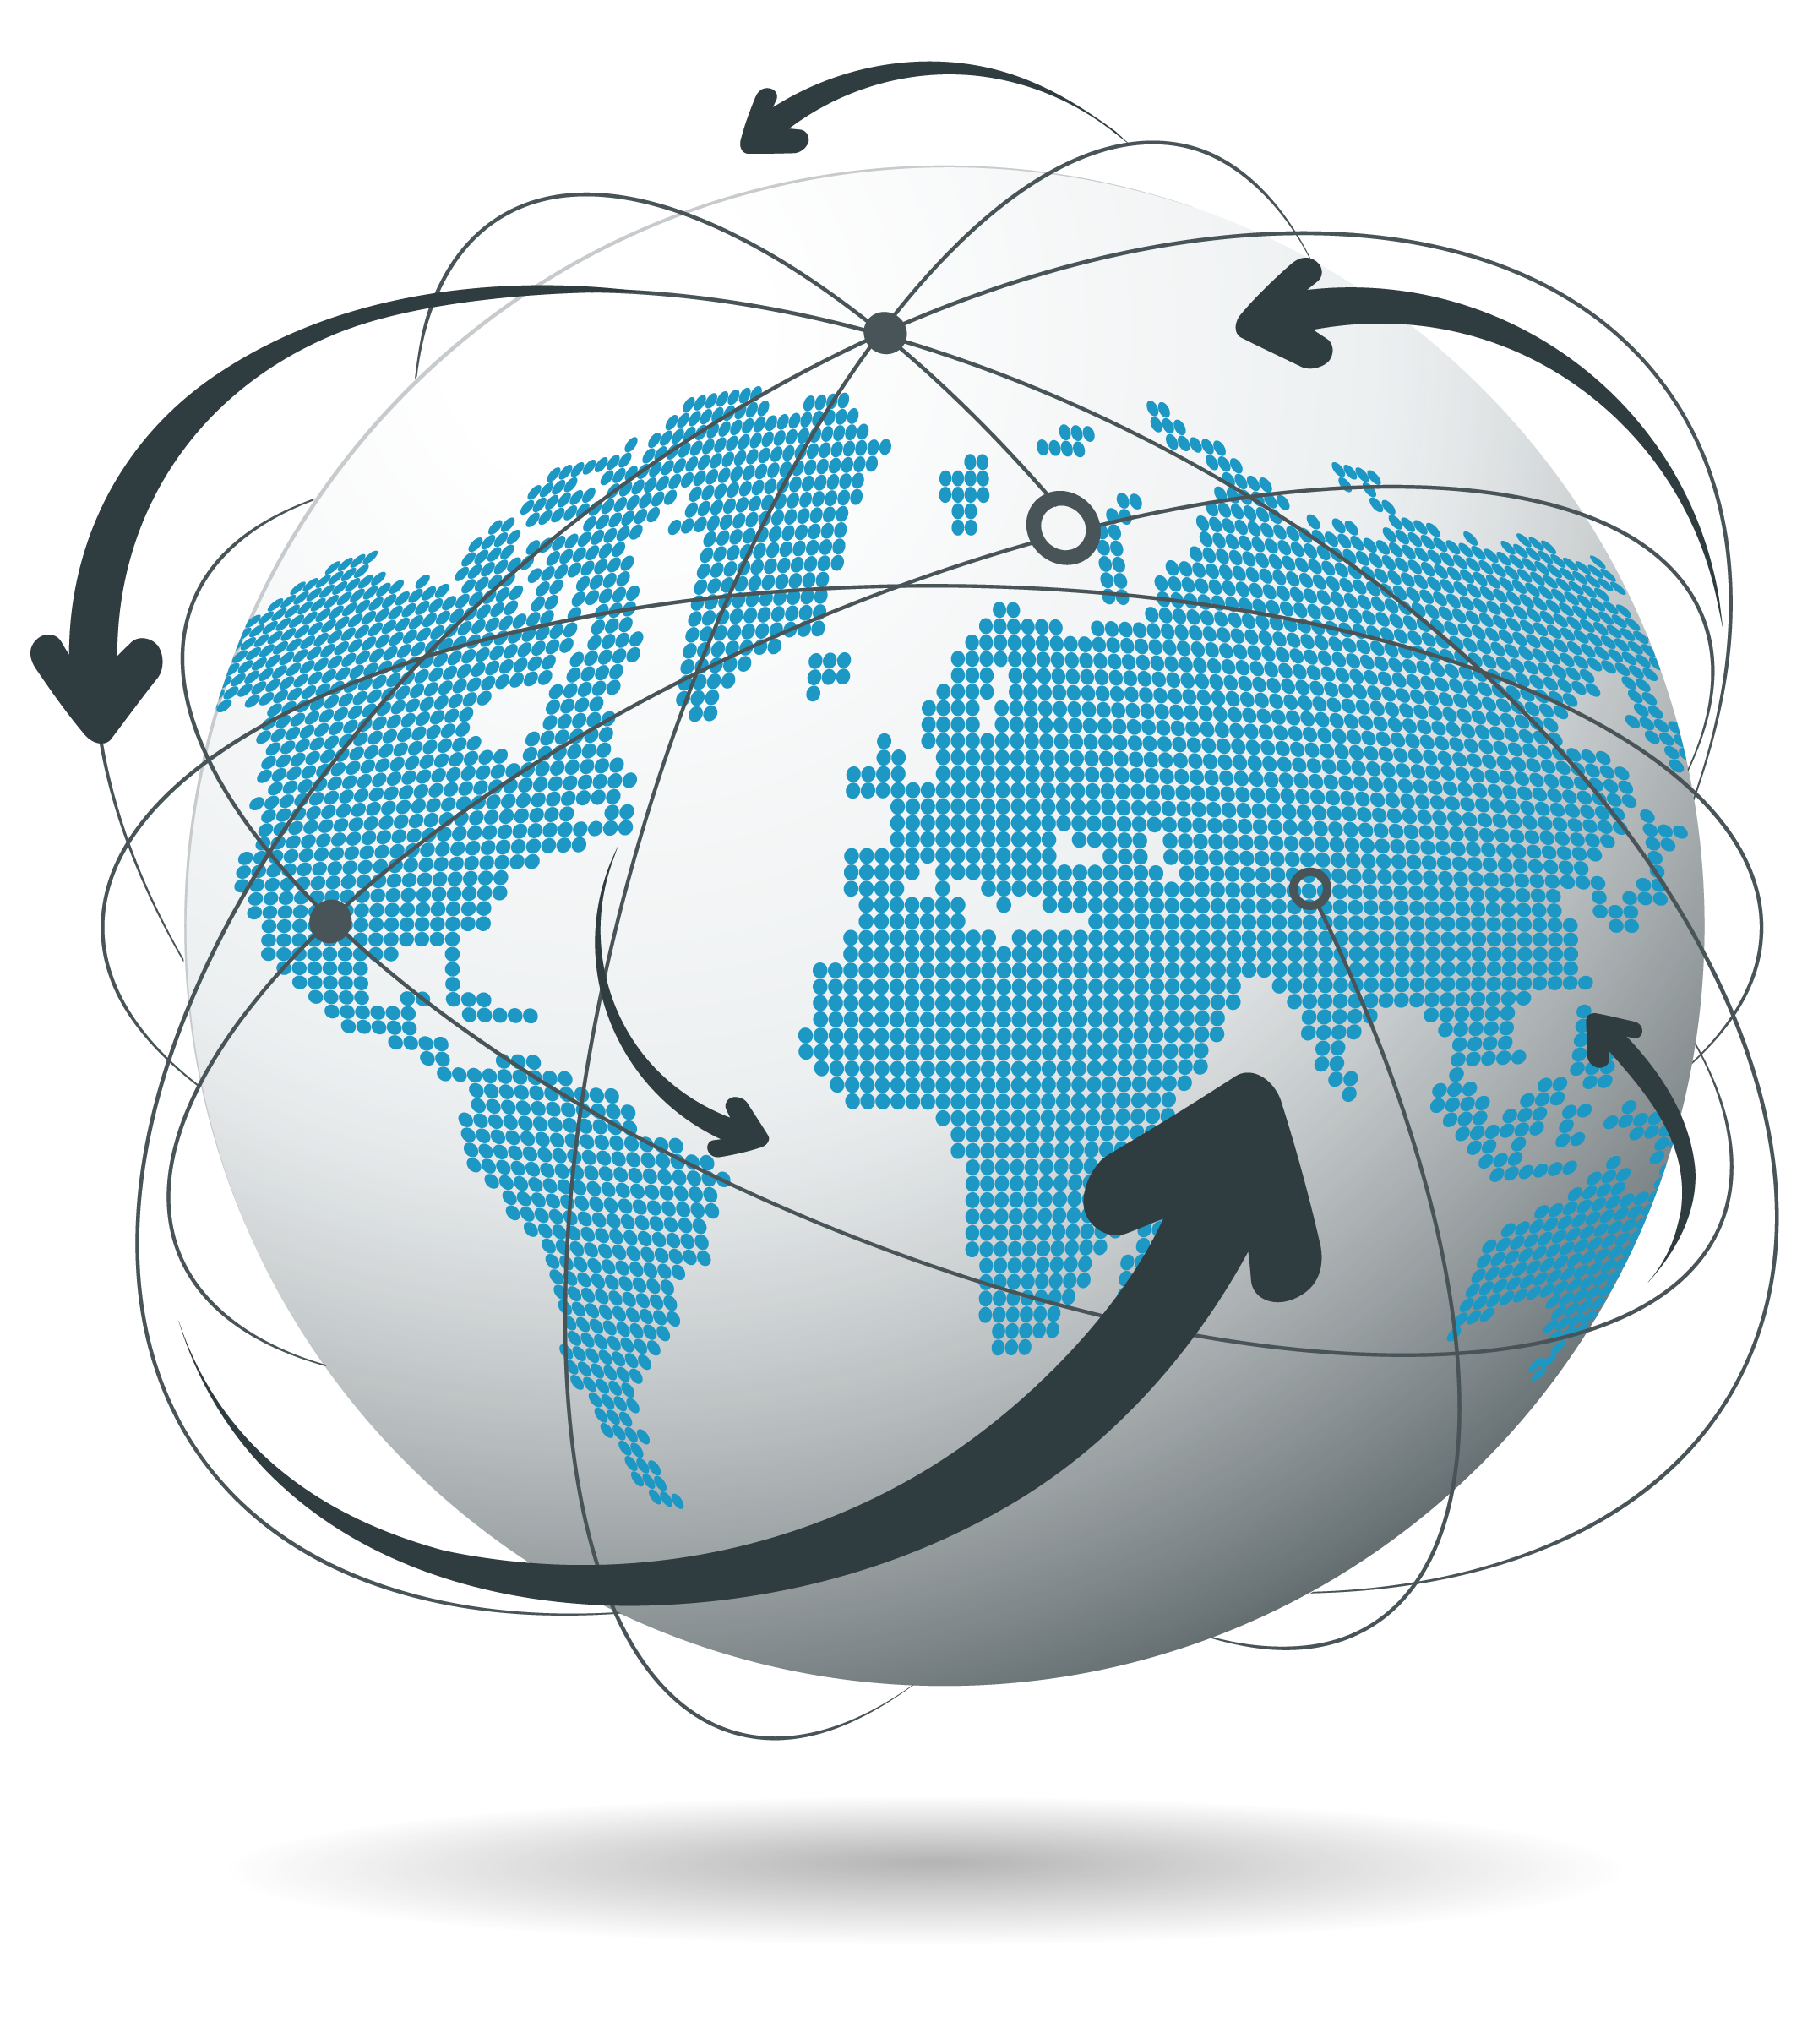 World PNG Images.